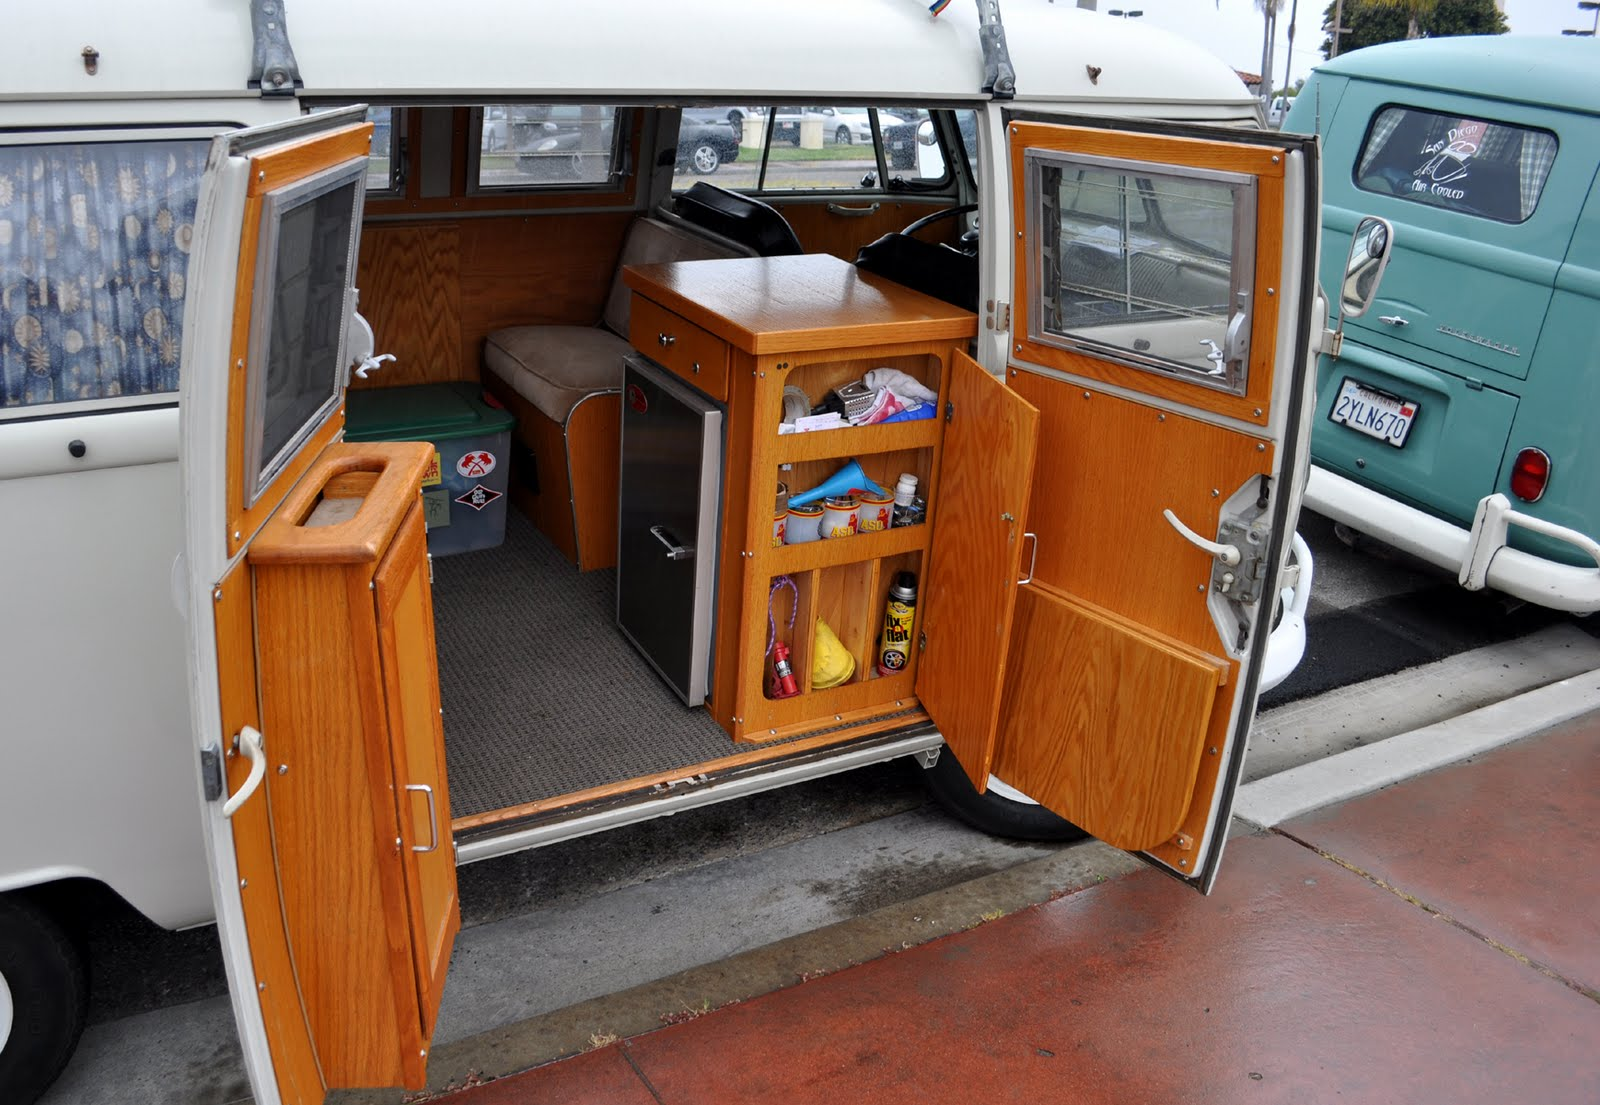 Just A Car Guy: VW type 2 / kombi / mini bus ... whatever the correct name is, here are some ...